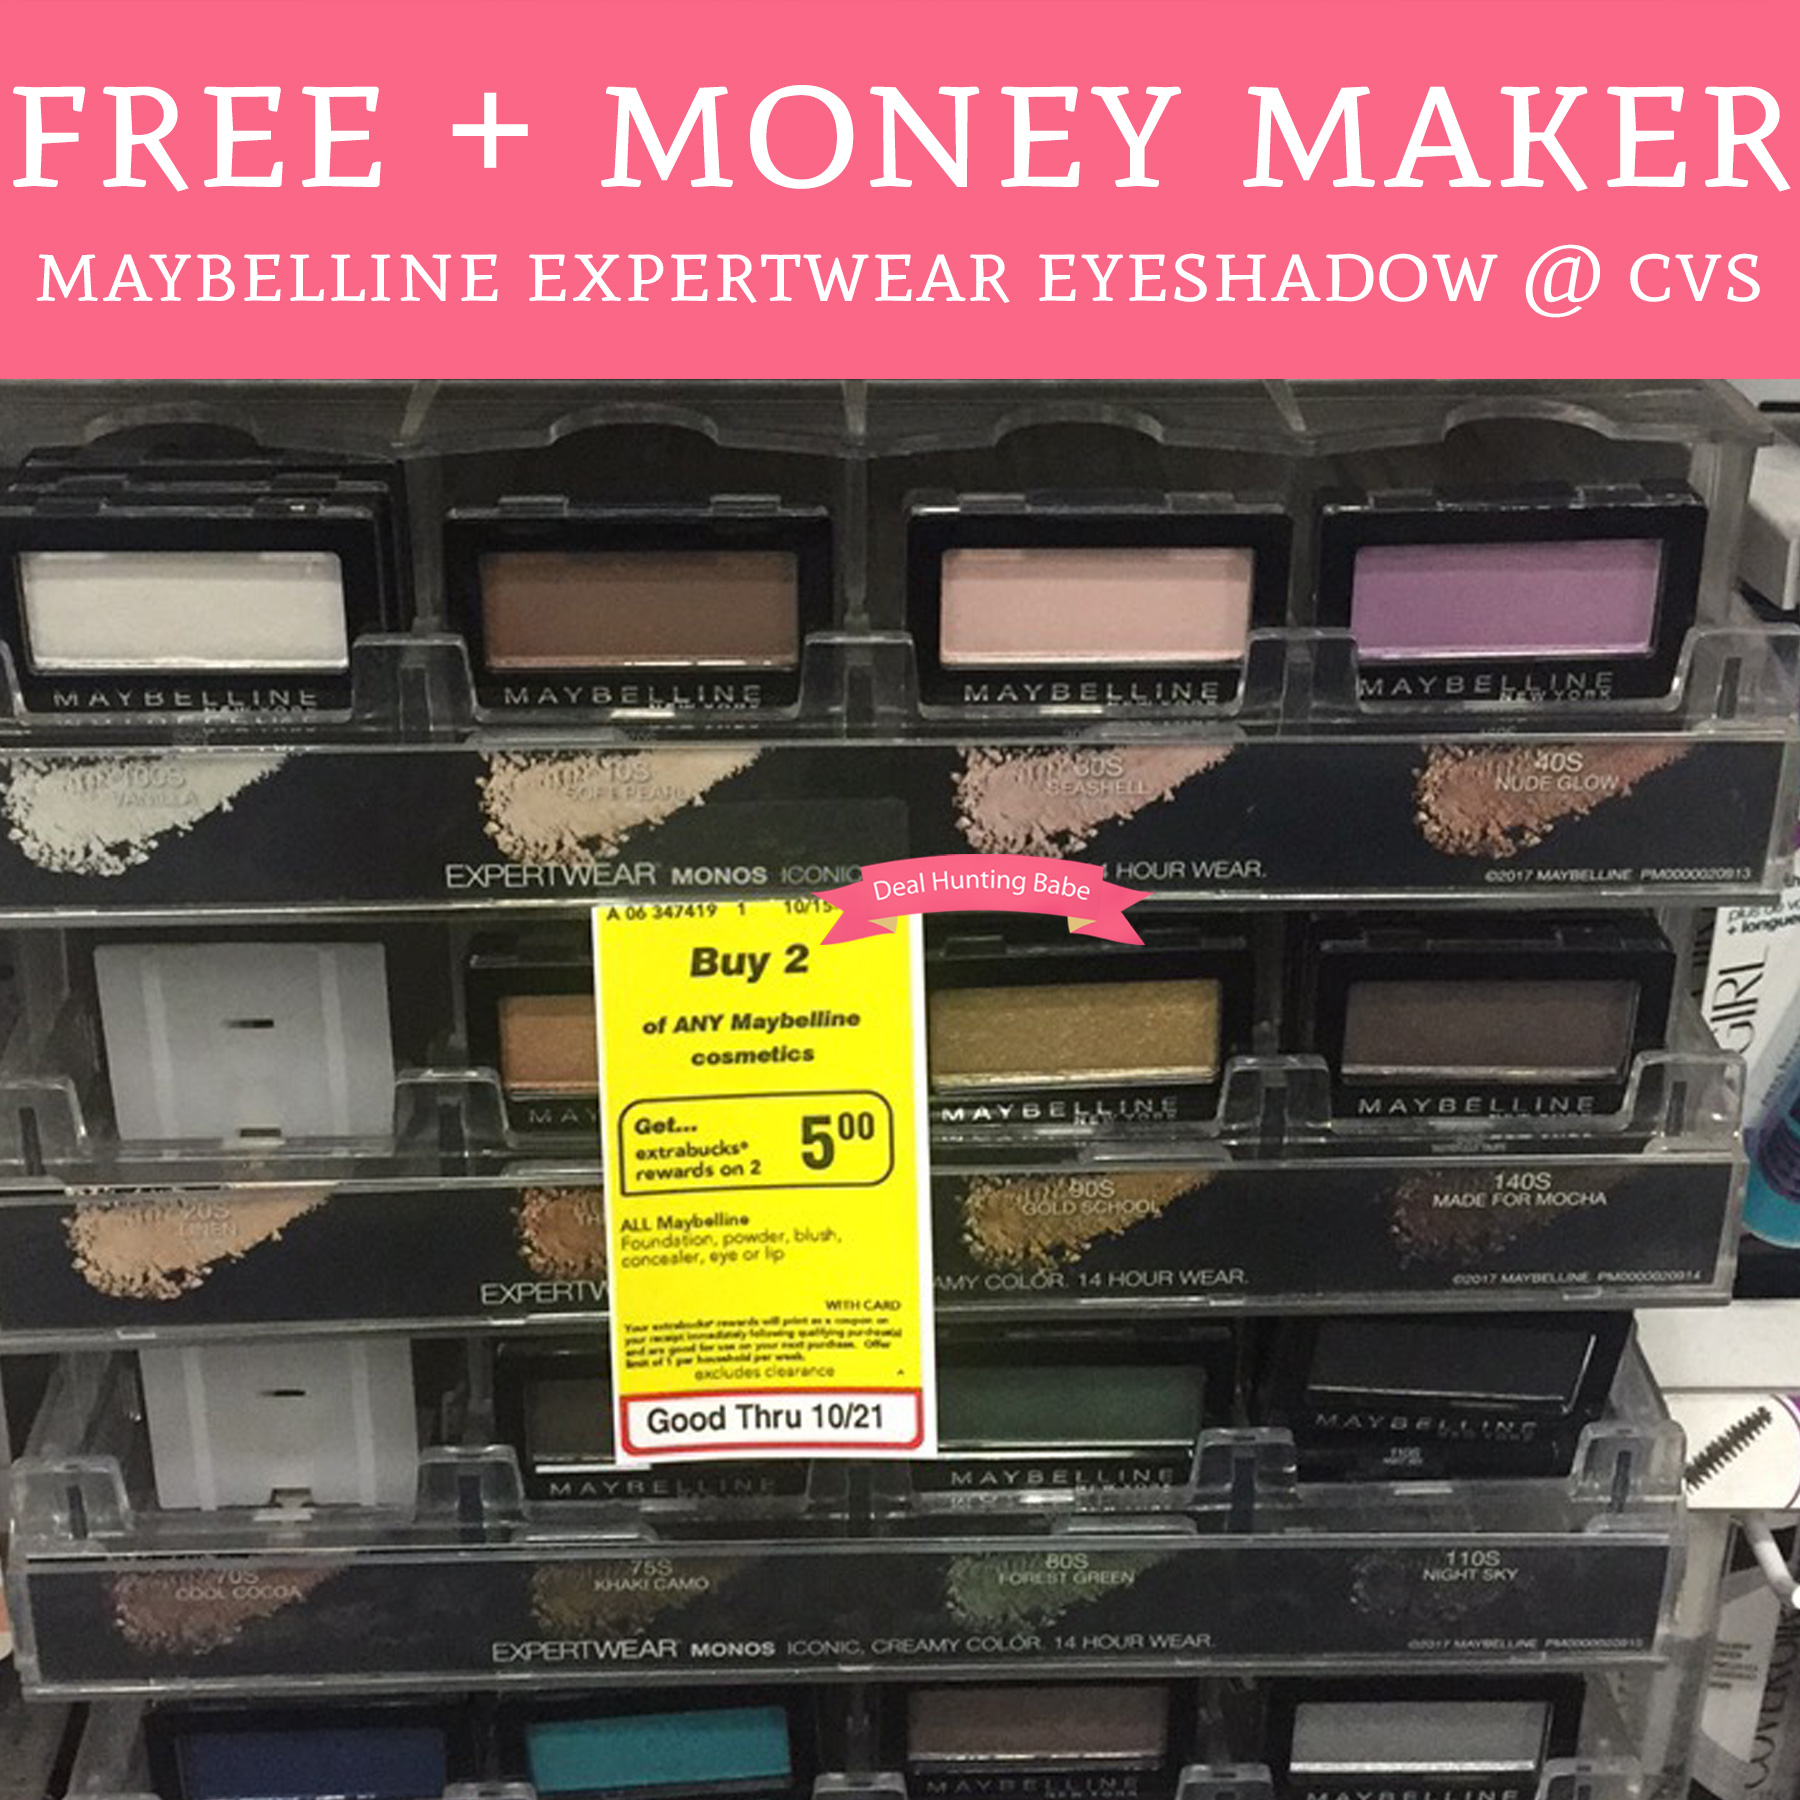 Fabulous Who Wants To Make Some Free Money Maker Maybelline Expertwear Shadow How To Print Photos Off Iphone At Cvs How To Print Instagram Photos At Cvs photos How To Print Photos At Cvs